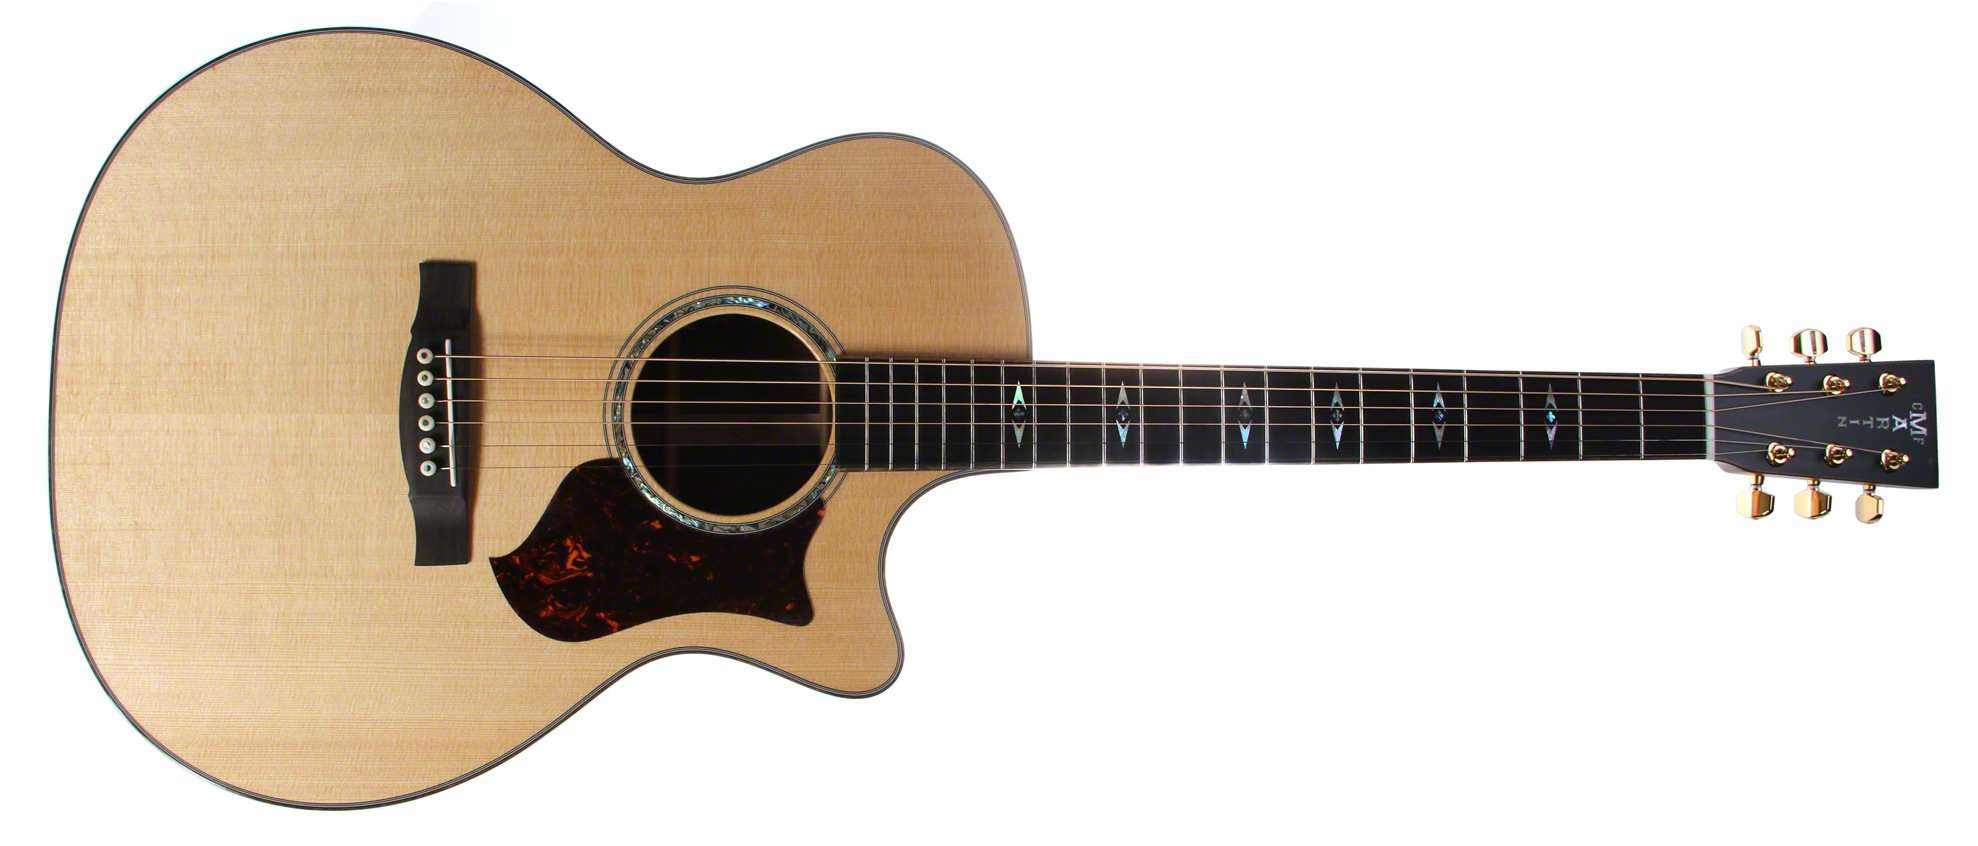 Martin Guitars See other martin guitars 1978x846